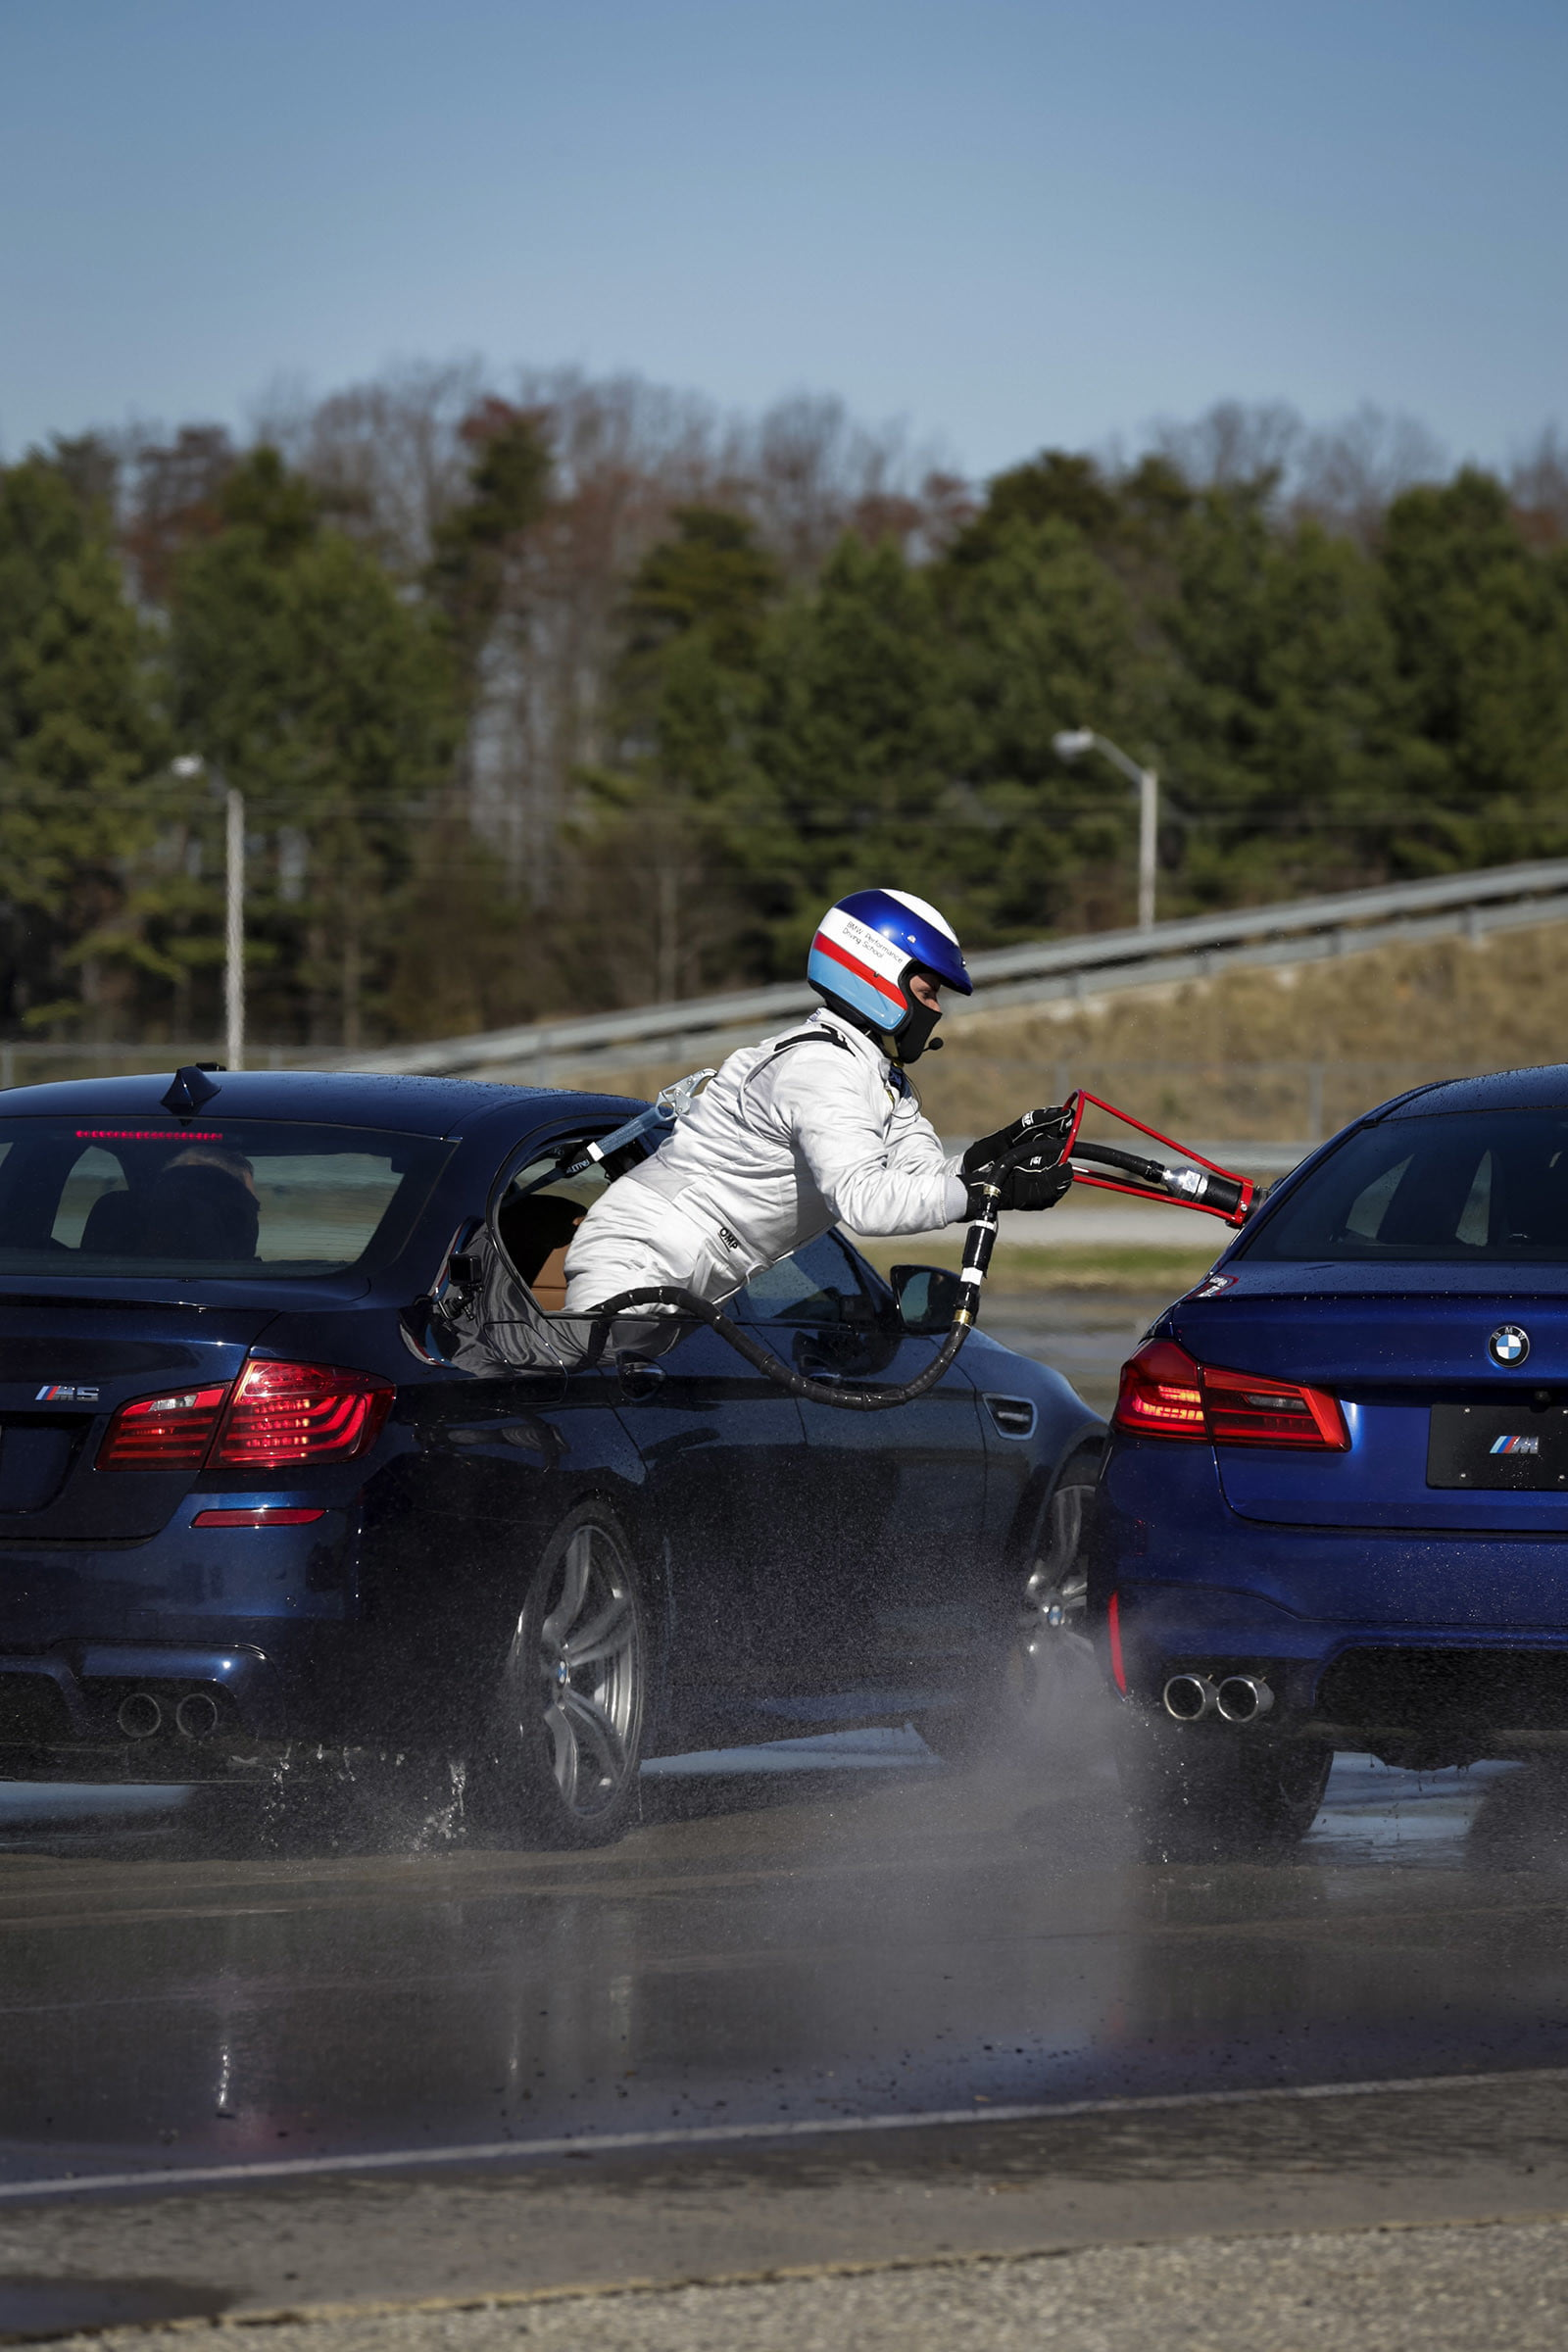 bmw sets two guinness world records drifting sideways for 2325 miles record  longest drift with 2018 m5 7